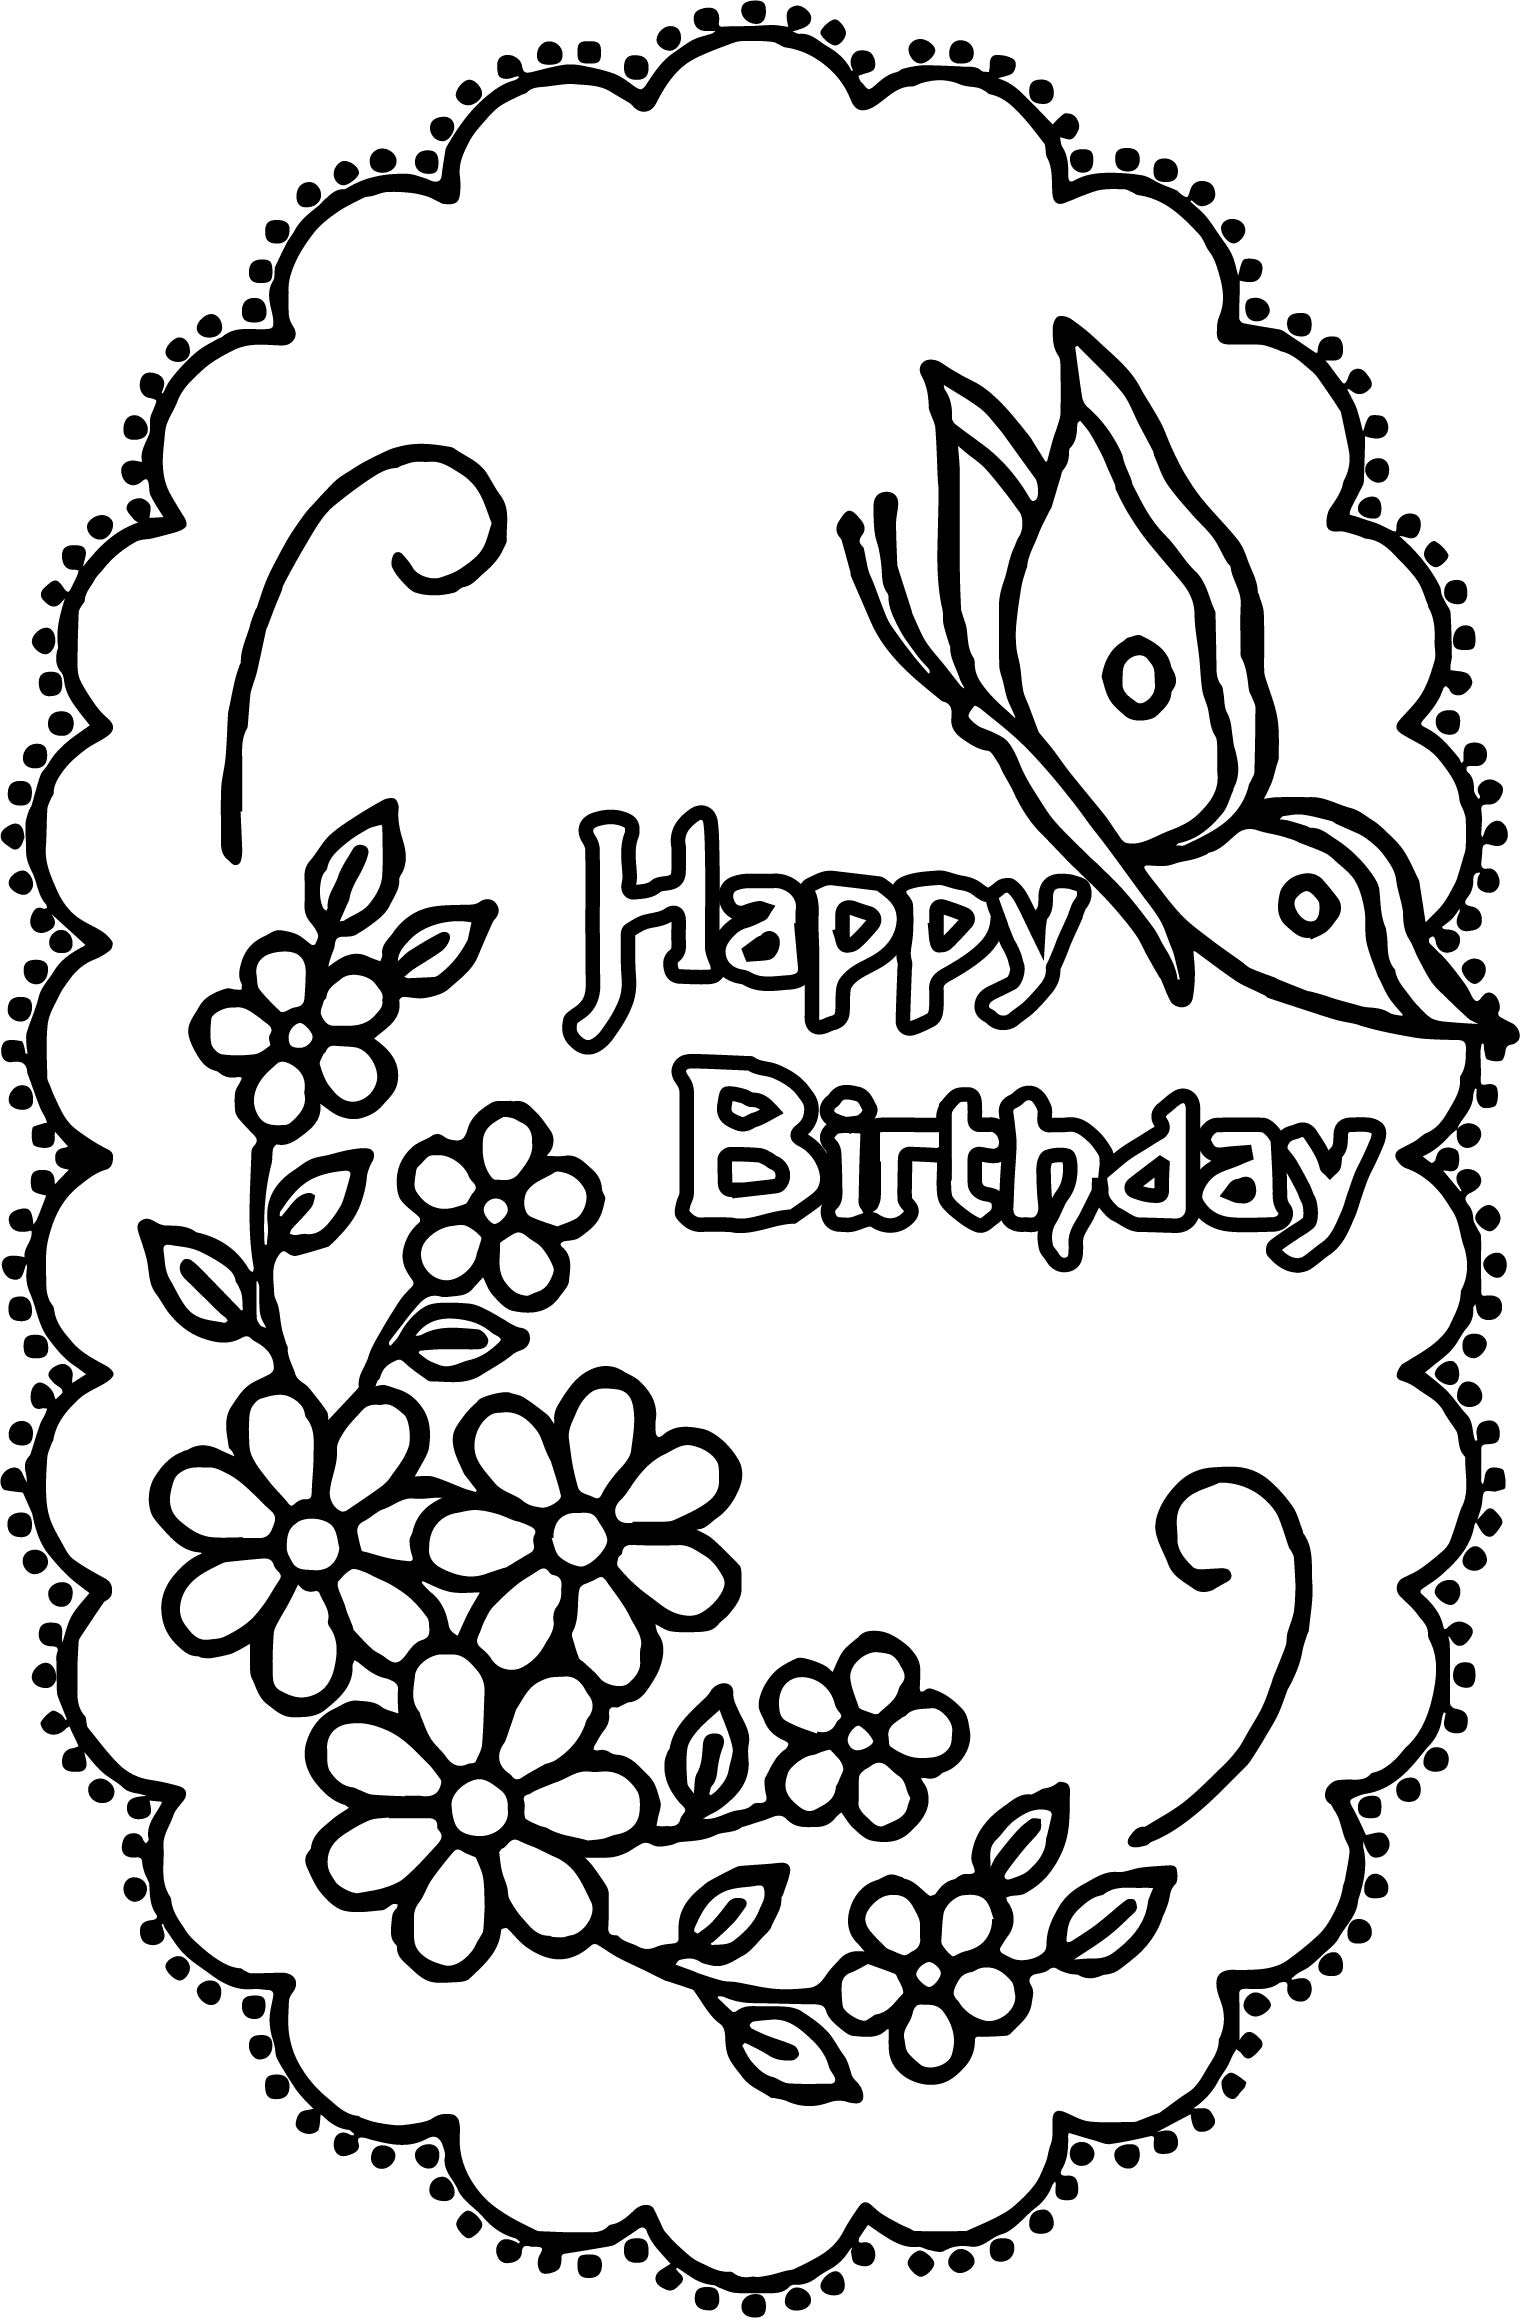 - Happy Birthday Coloring Pages – Coloring.rocks!